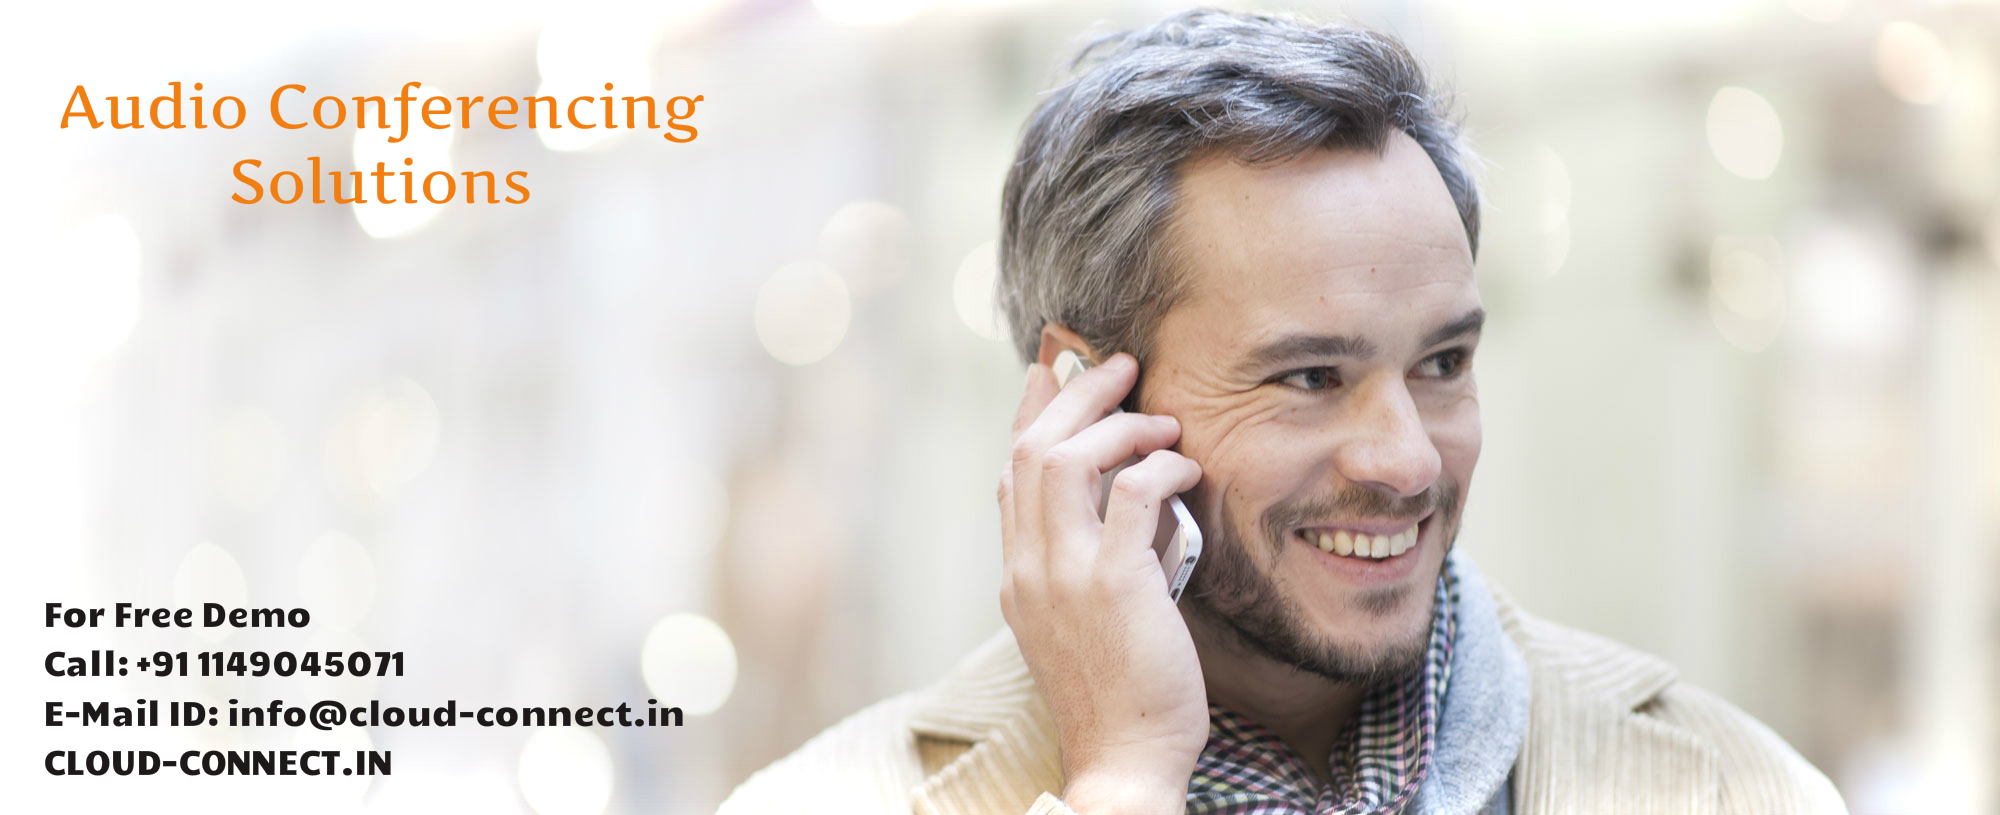 Web and Audio Conferencing